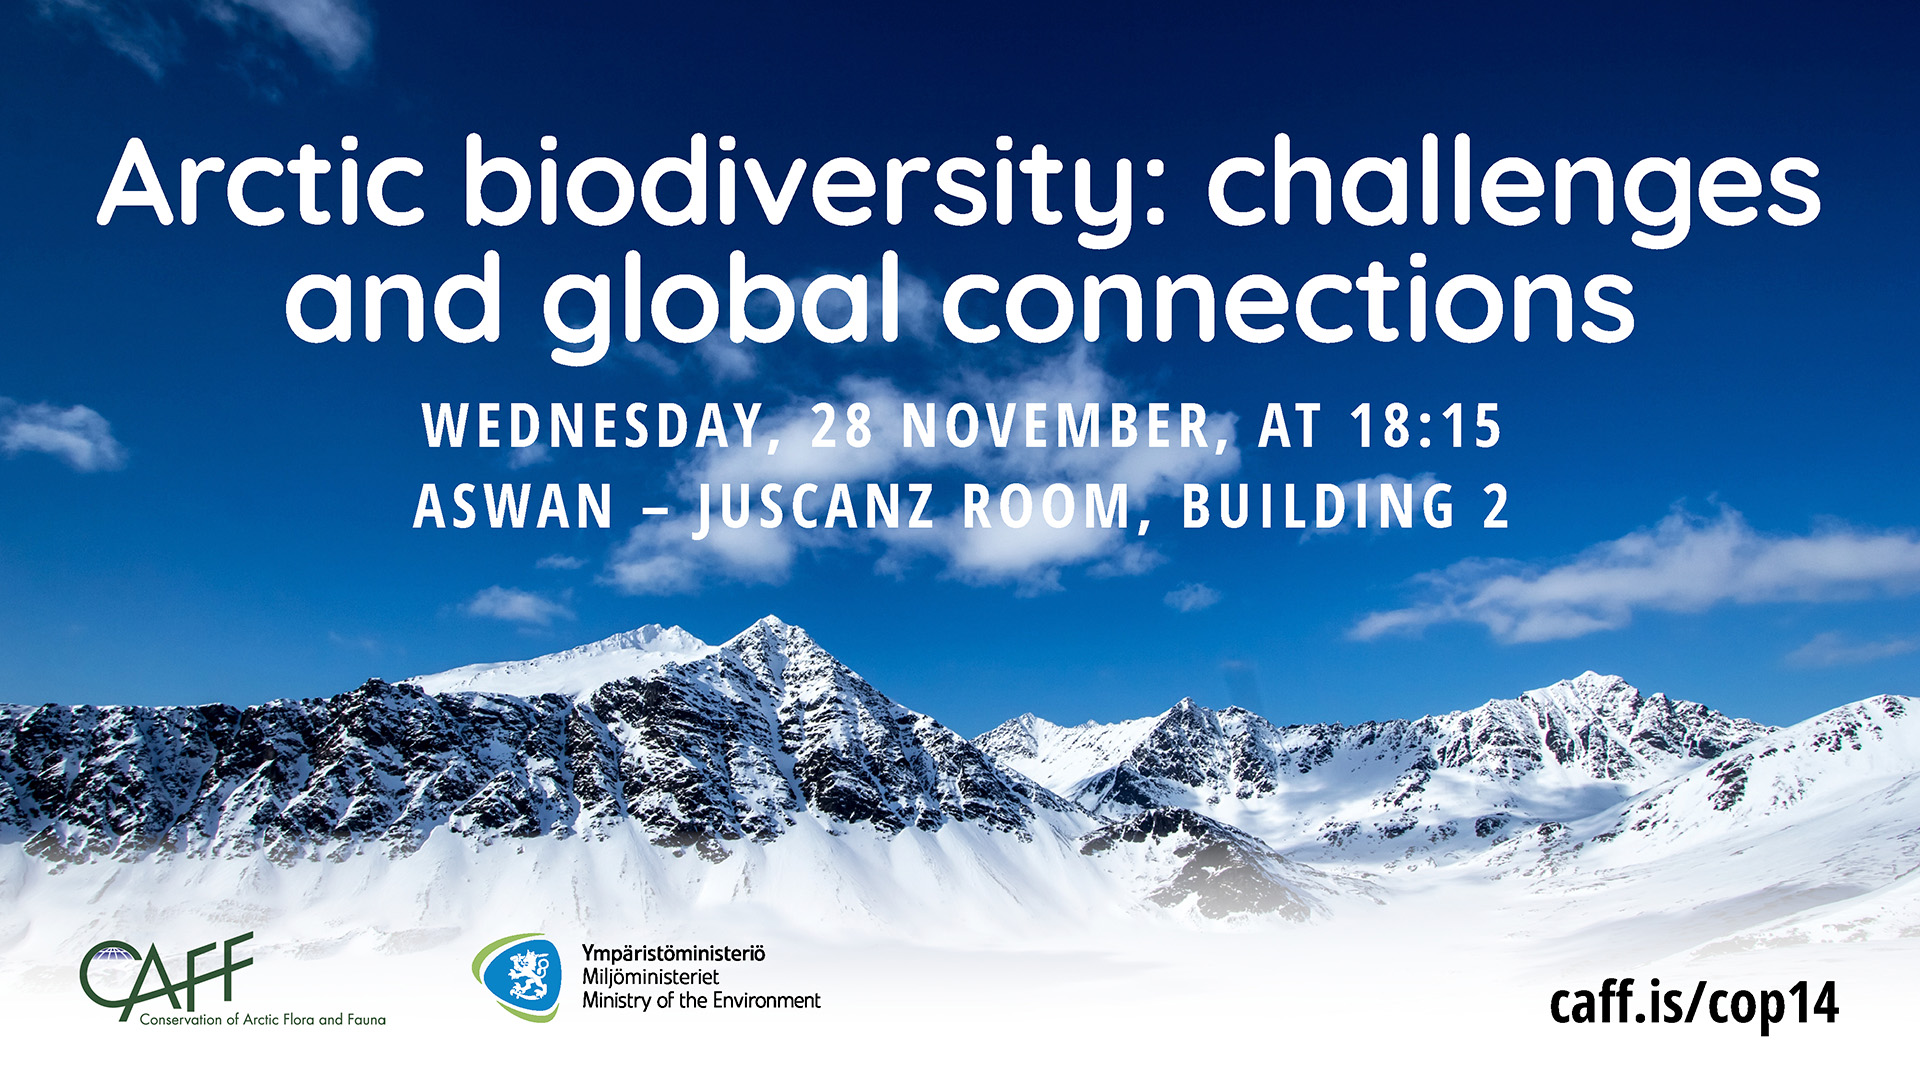 Arctic biodiversity challenges and global connections